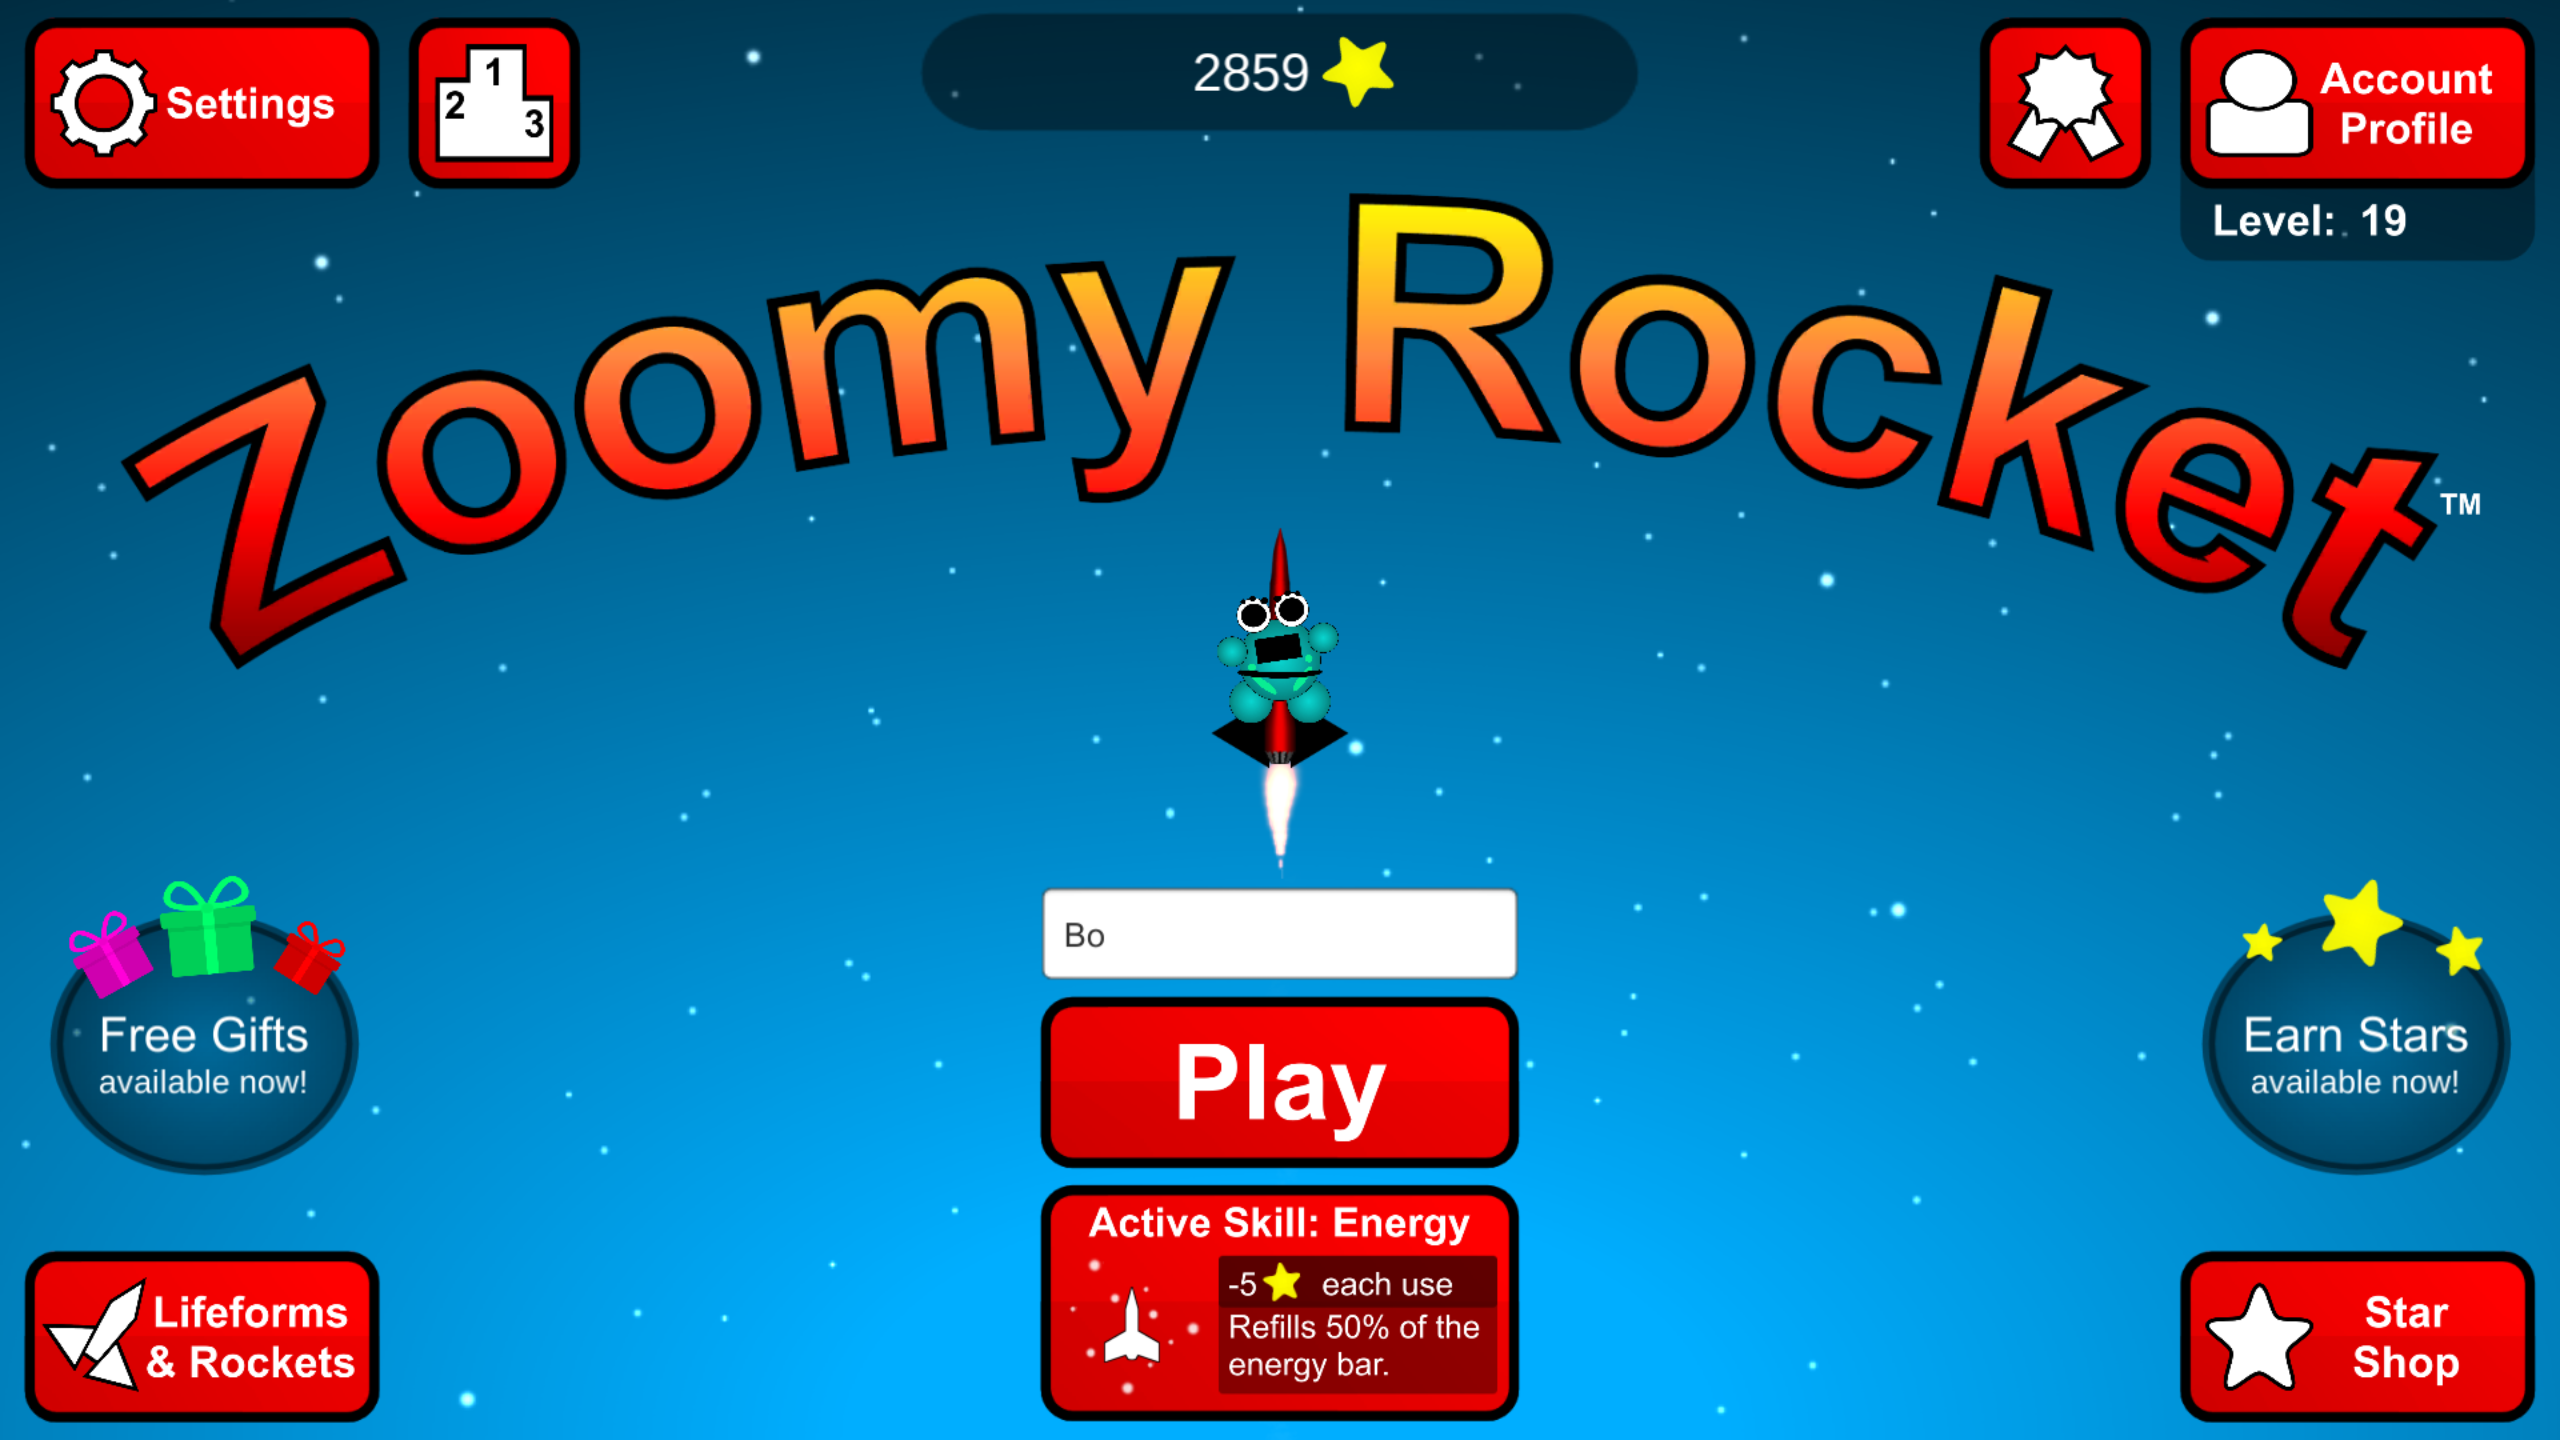 Zoomy Rocket title screen. Are you ready to play the game?